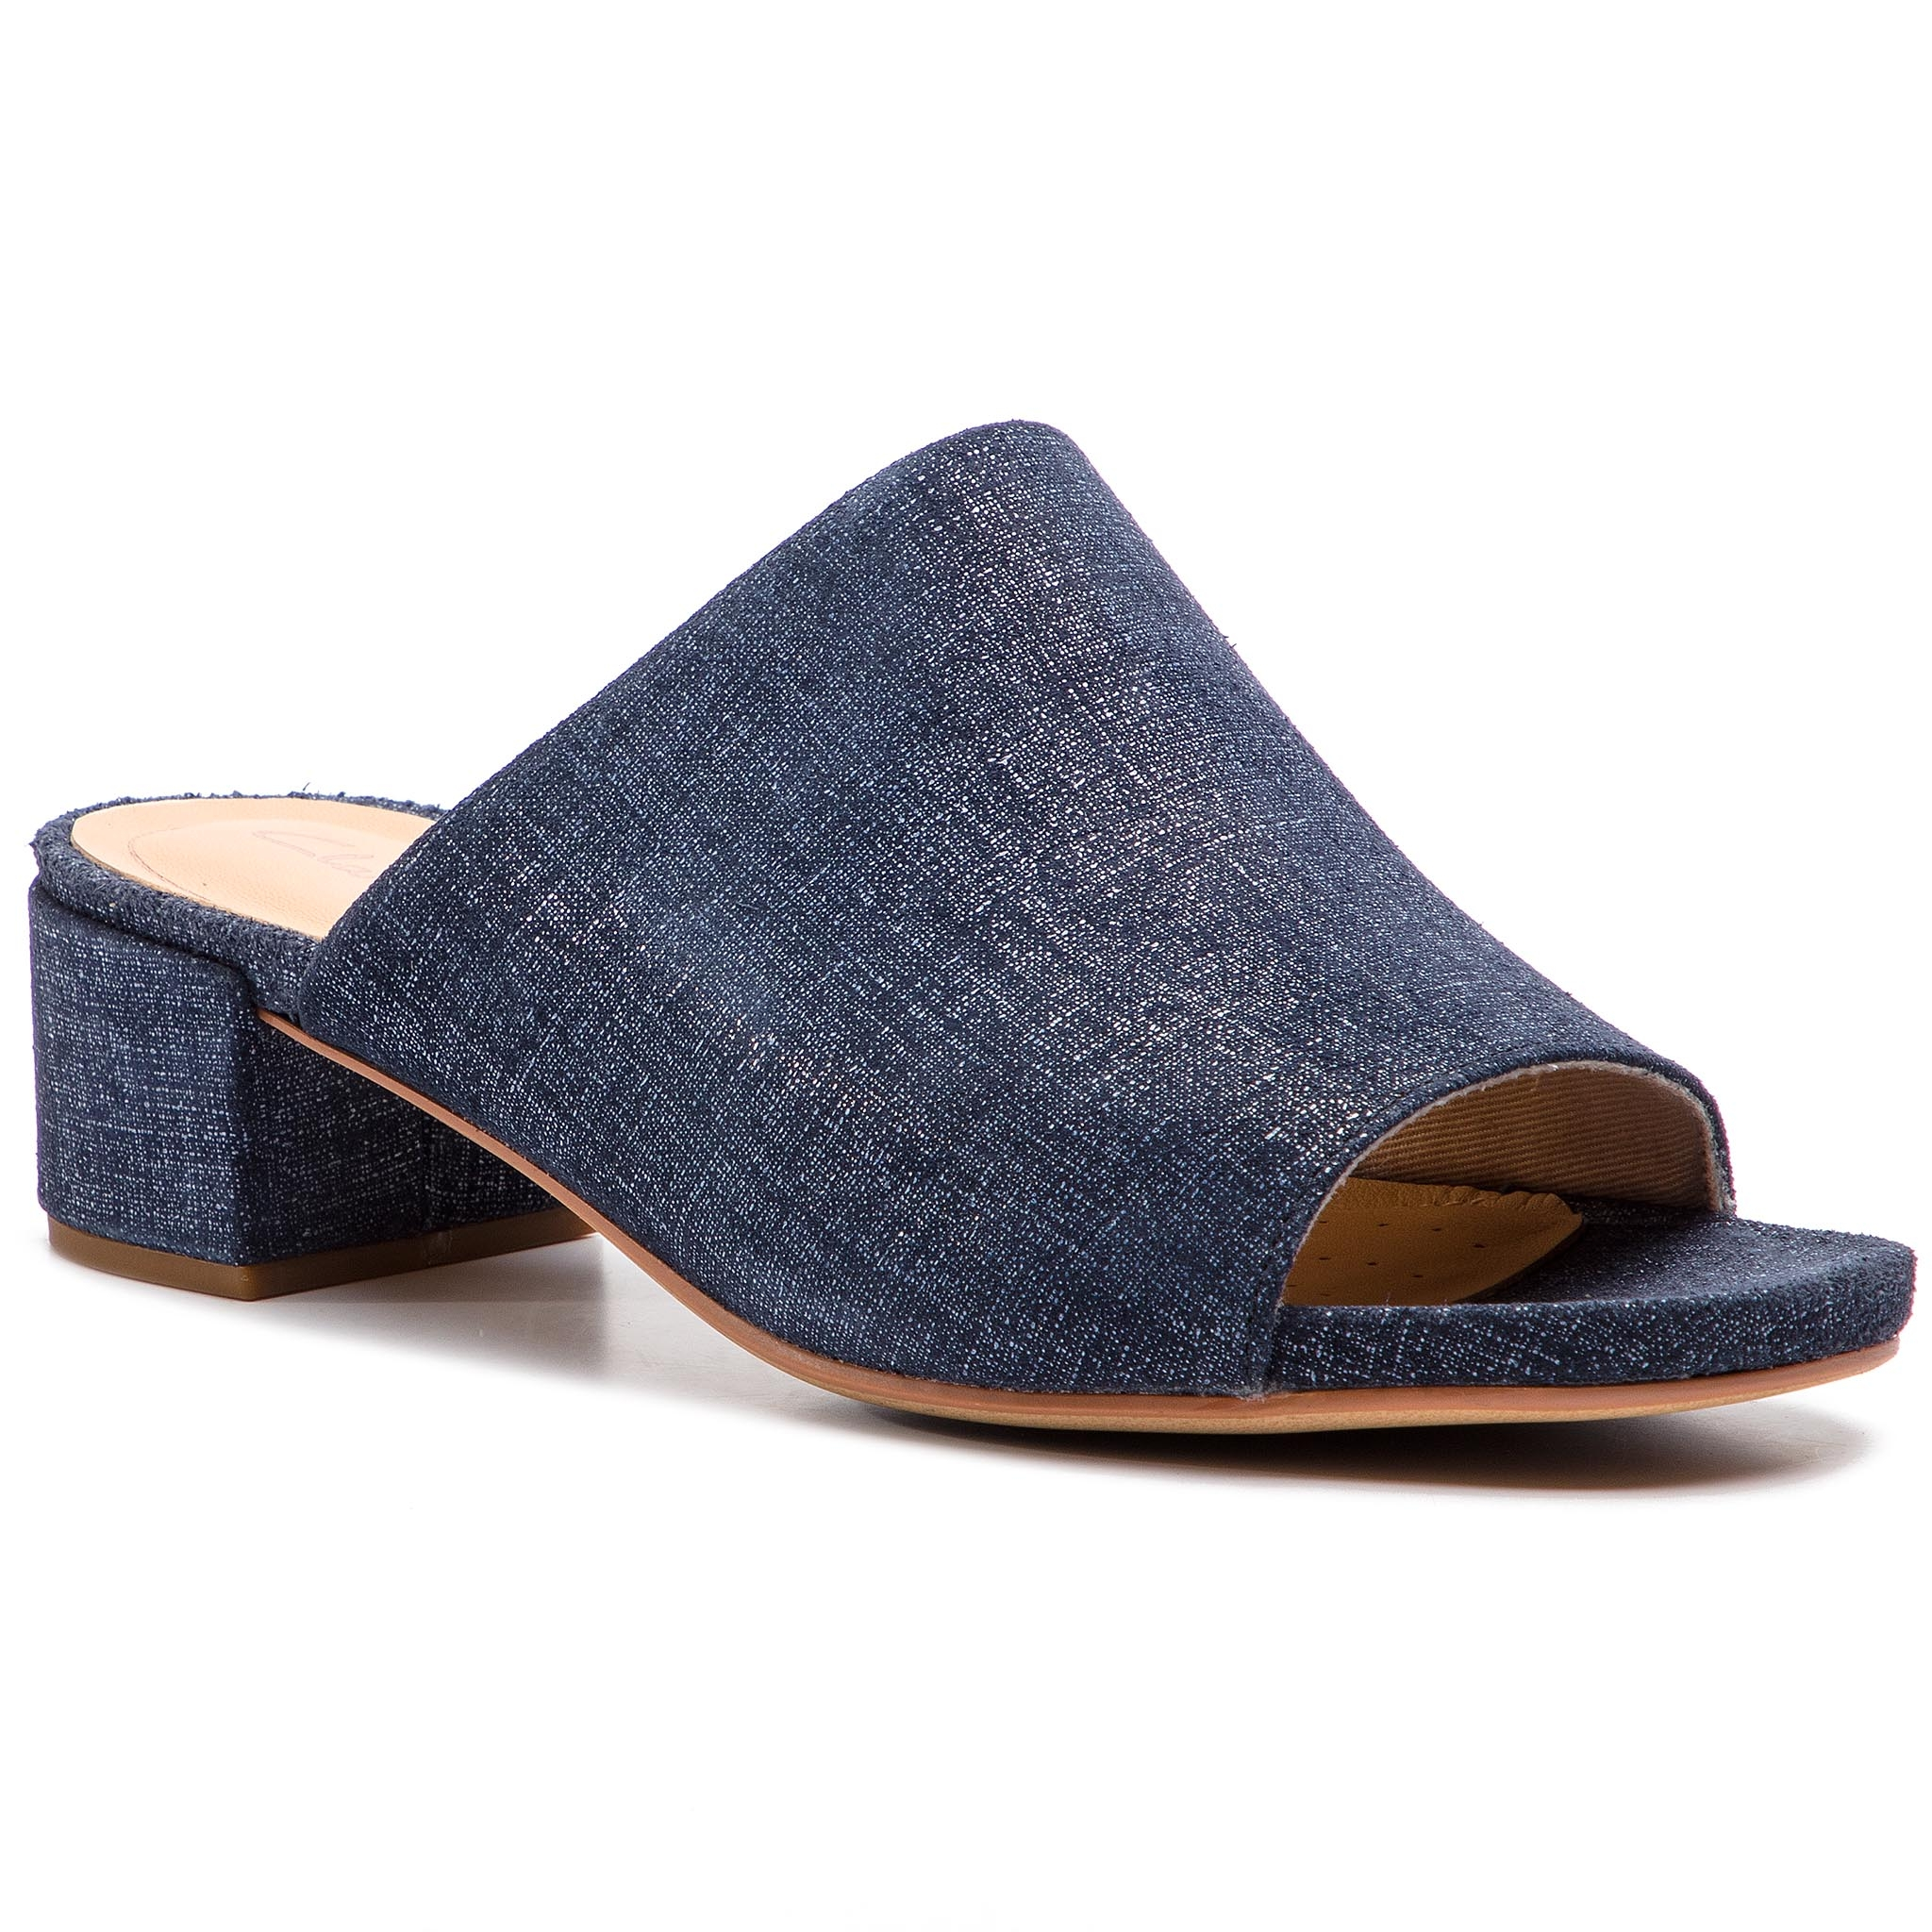 Șlapi Clarks - Orabella Daisy 261388884 Navy Interest imagine epantofi.ro 2021